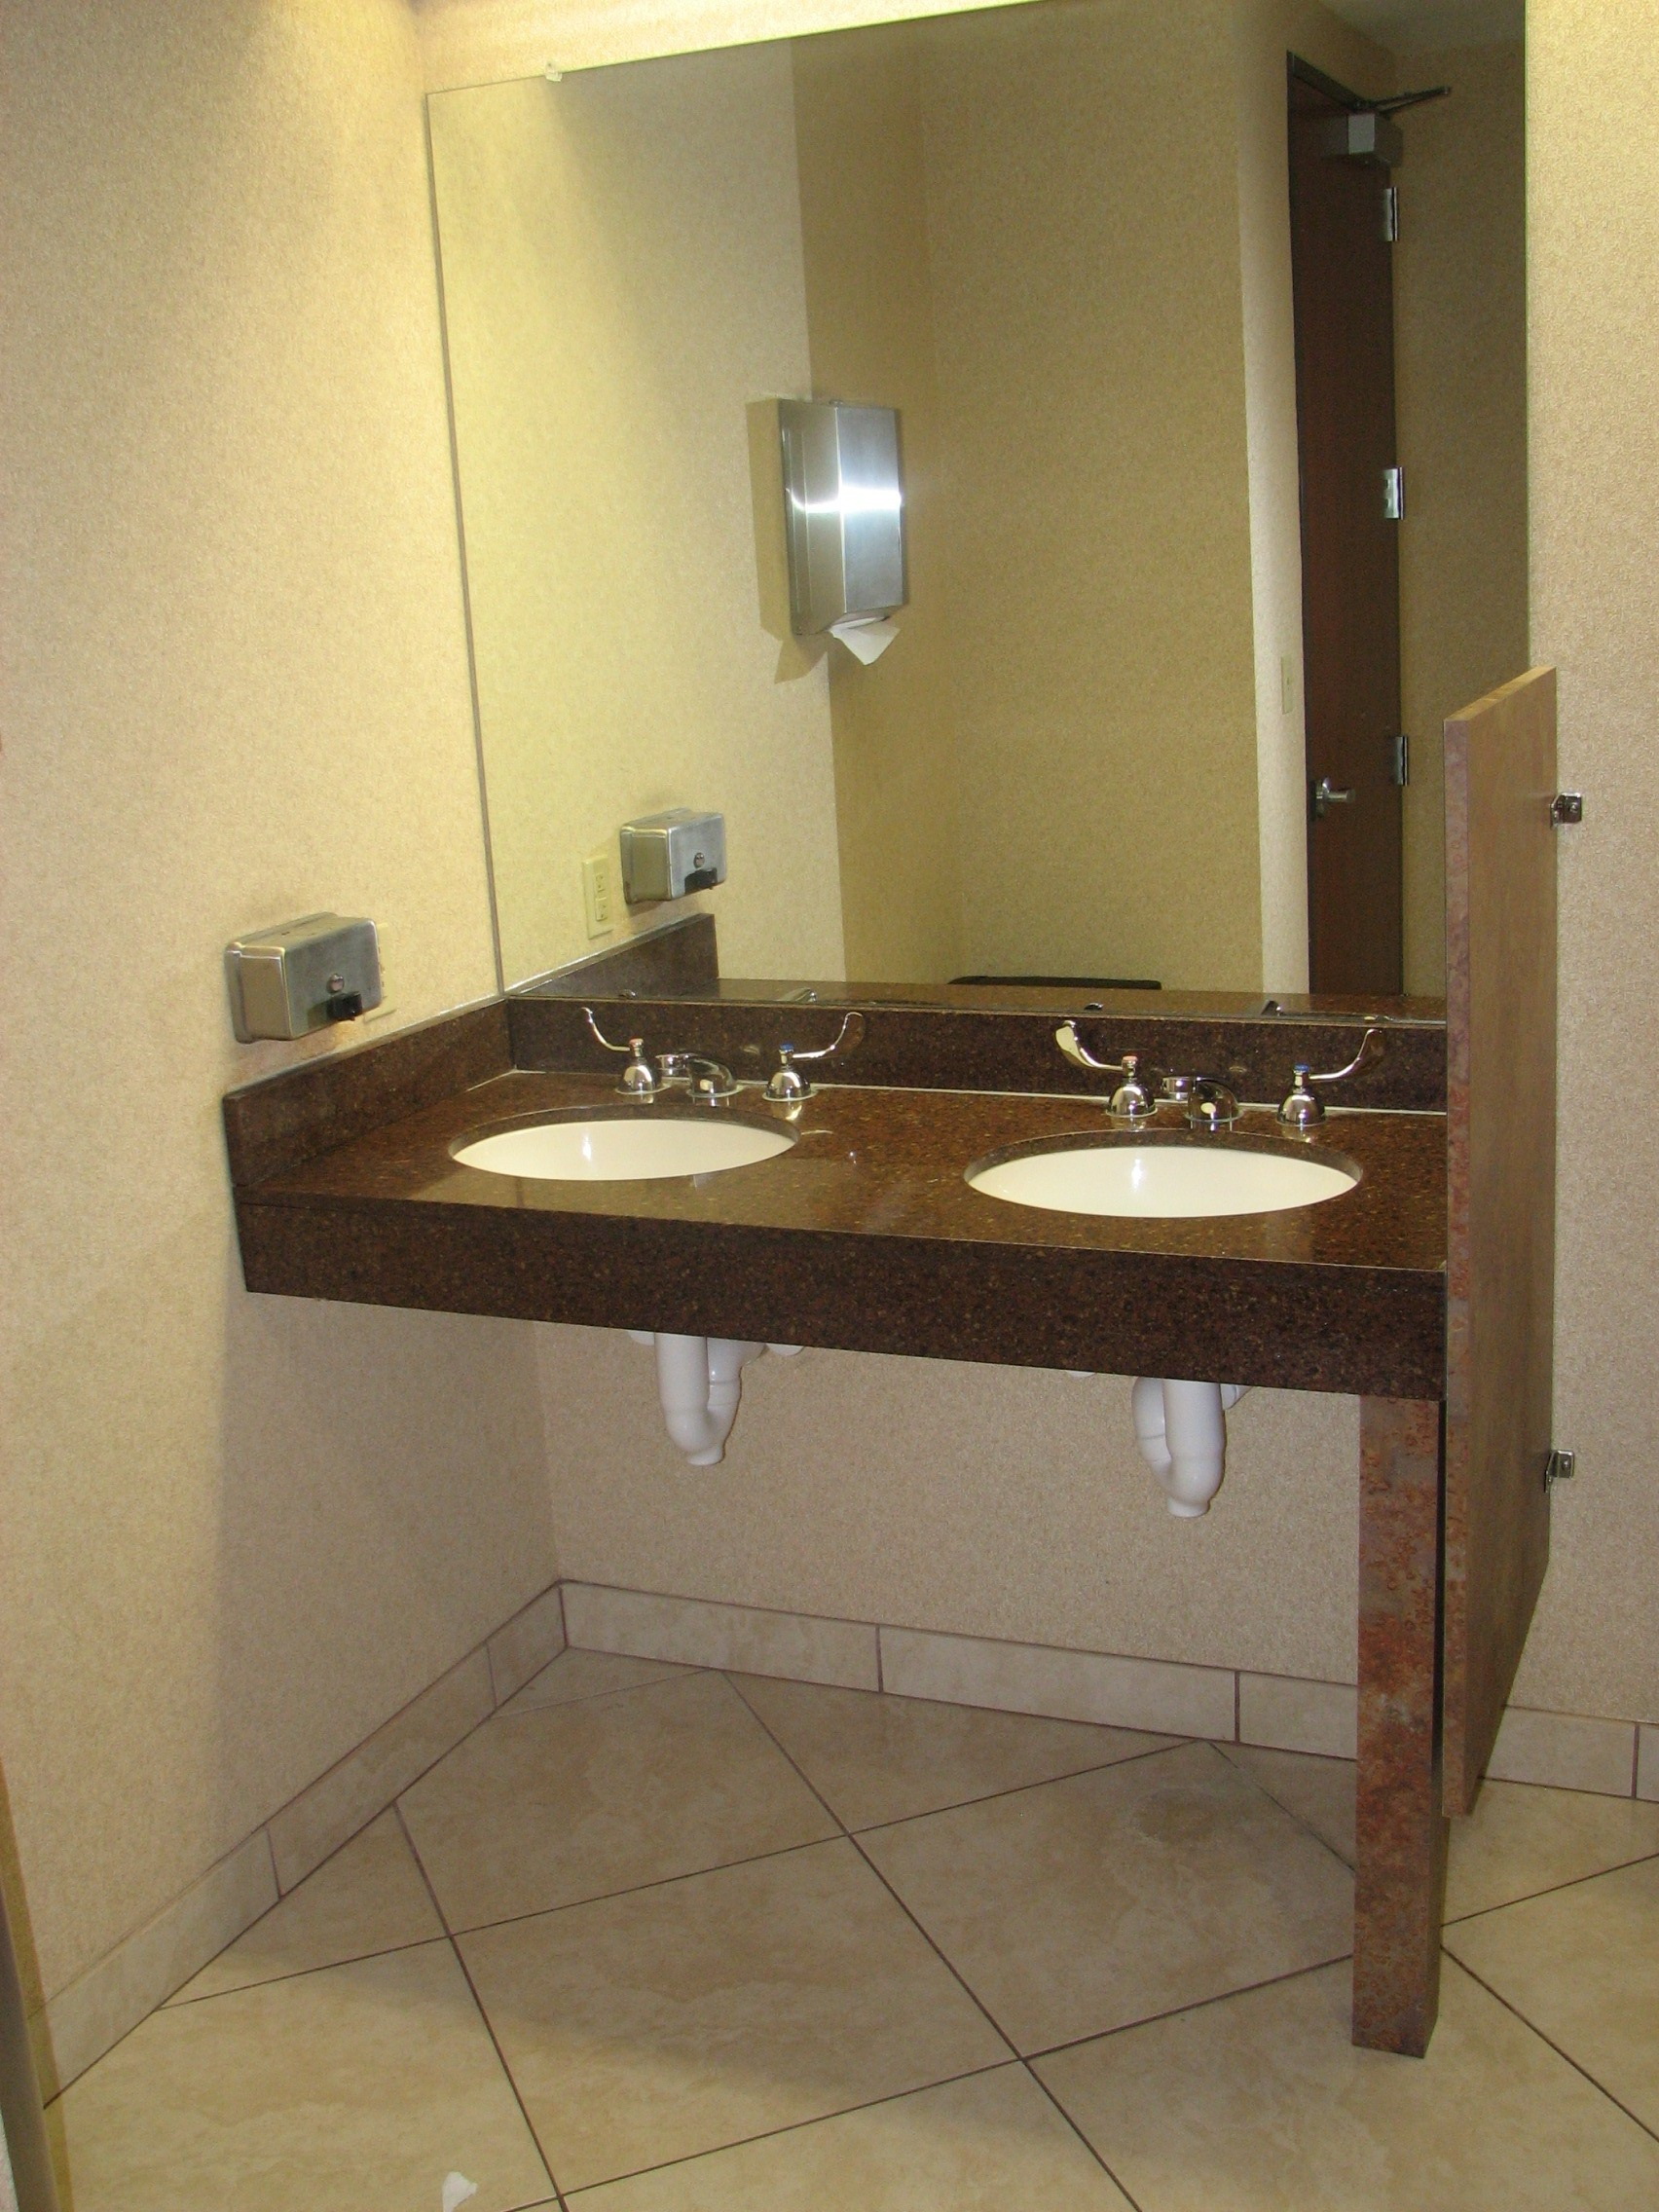 Ada Compliant Residential Bathroom Layout  Ada Compliant Bathroom   dact us. Ada Compliant Bathrooms Layout. Home Design Ideas